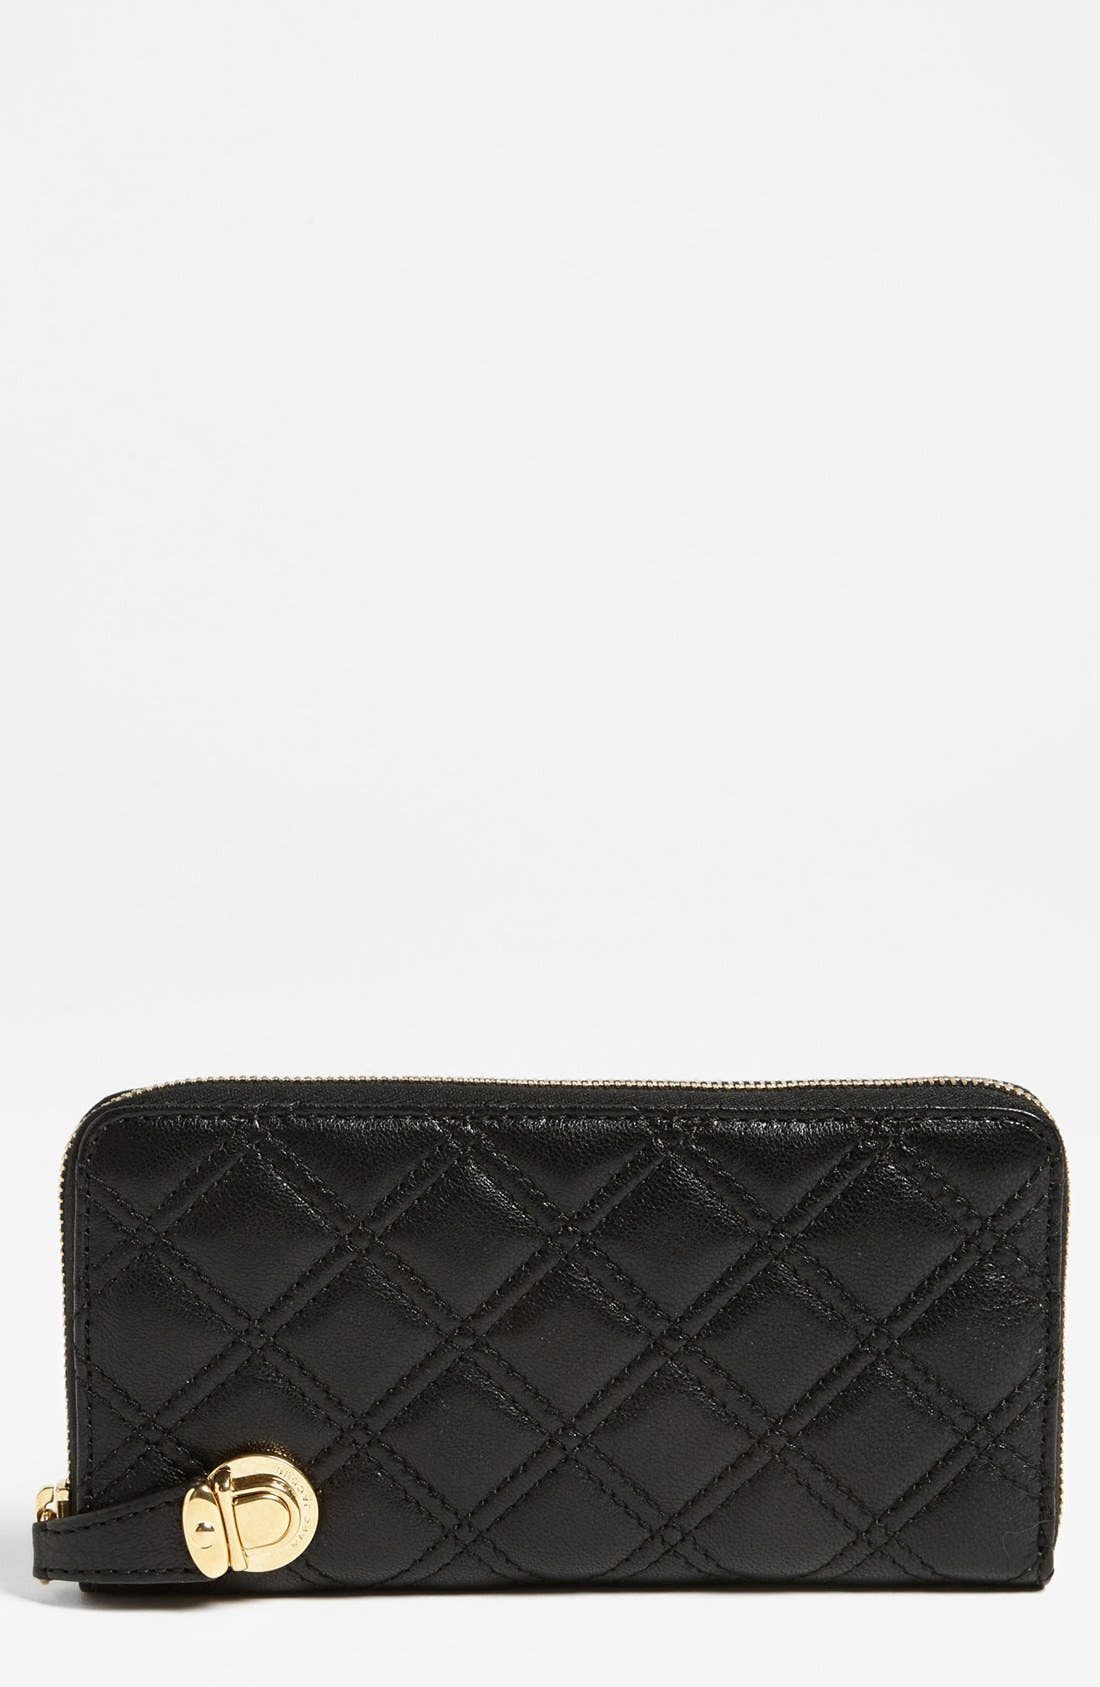 Main Image - MARC JACOBS 'Quilting Deluxe' Leather Wallet